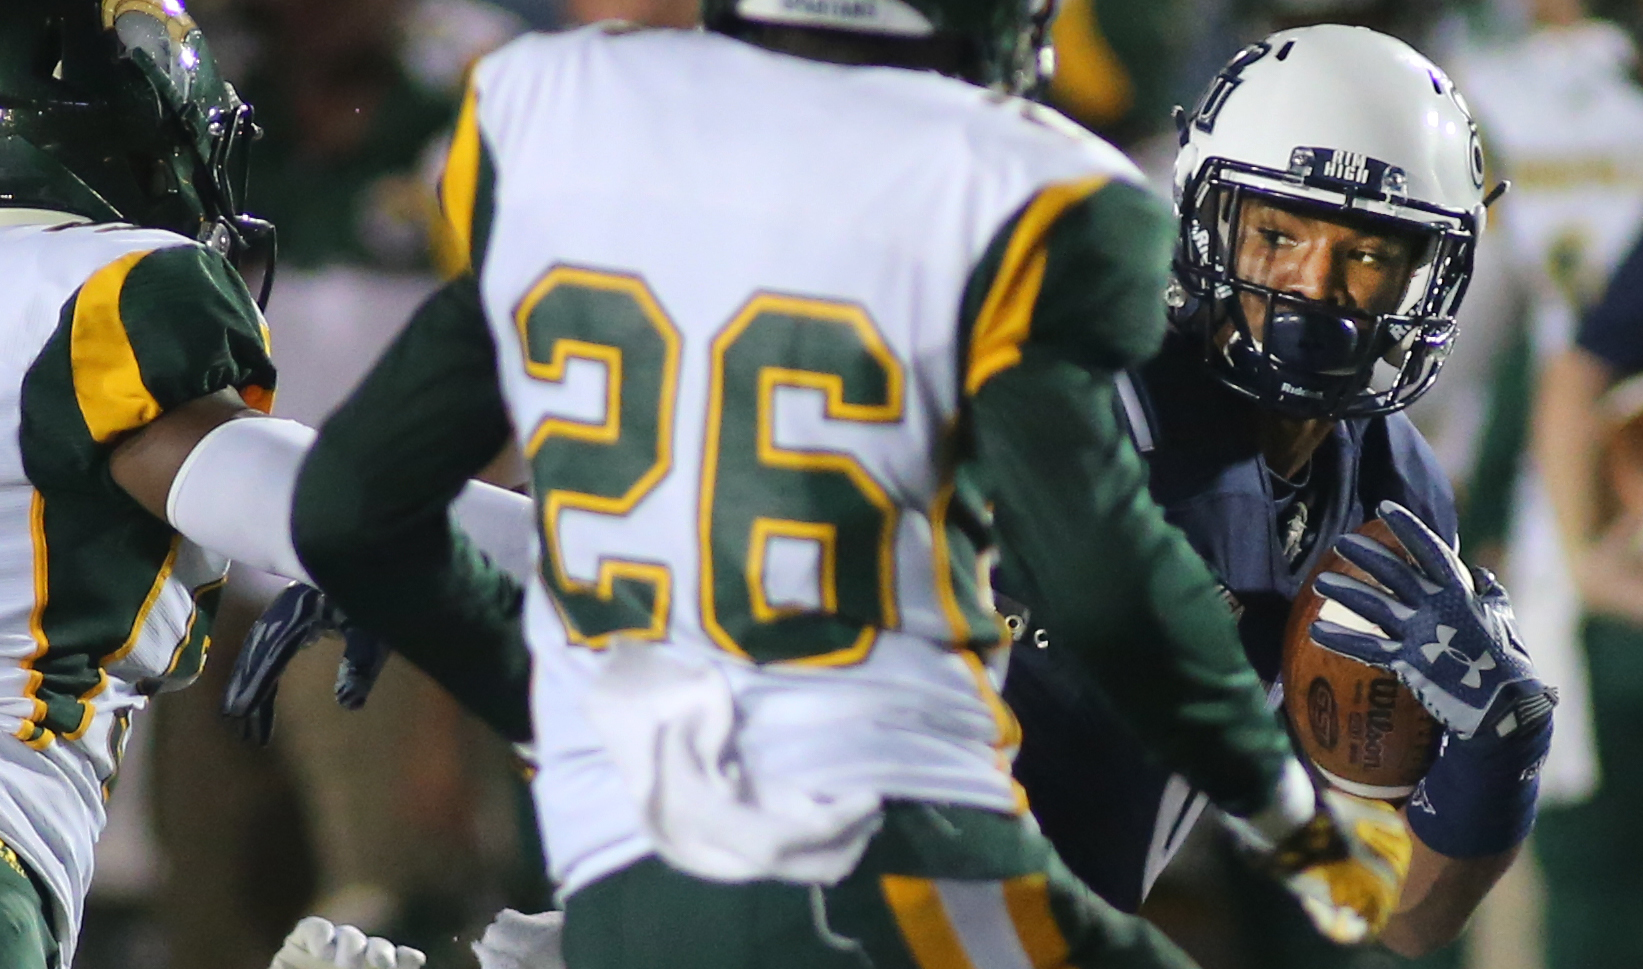 Old Dominion's Jonathan Duhart eyes Norfolk State defenders on his way to a first-quarter gain, Saturday, Sept. 12, 2015 at Foreman Field in Norfolk.